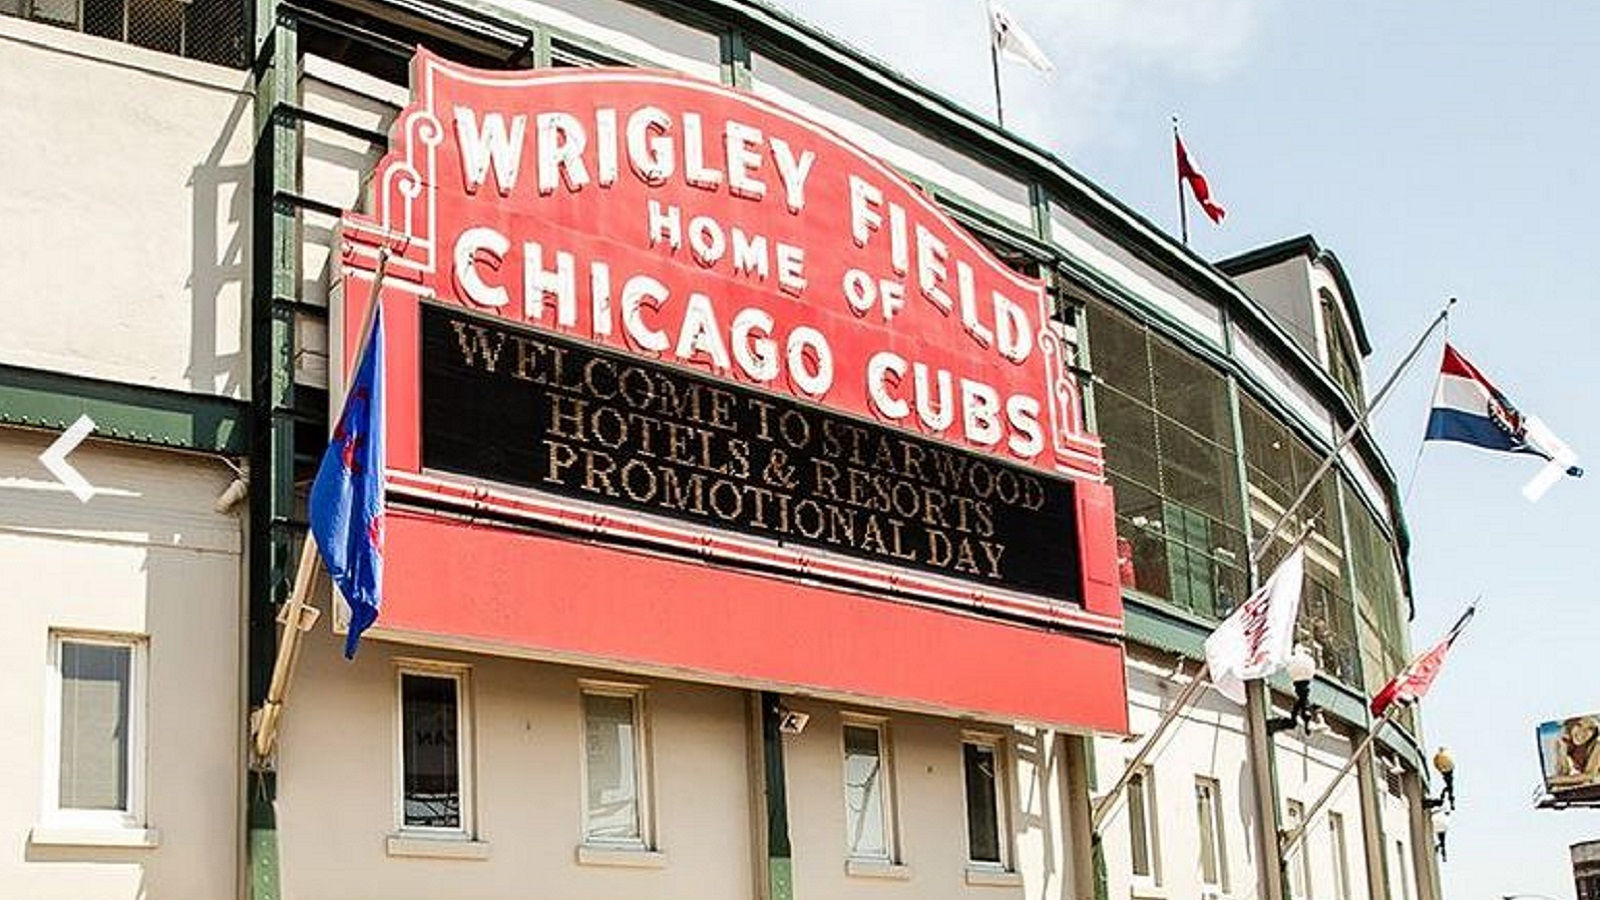 Chicago Sports featuring Wrigley Field